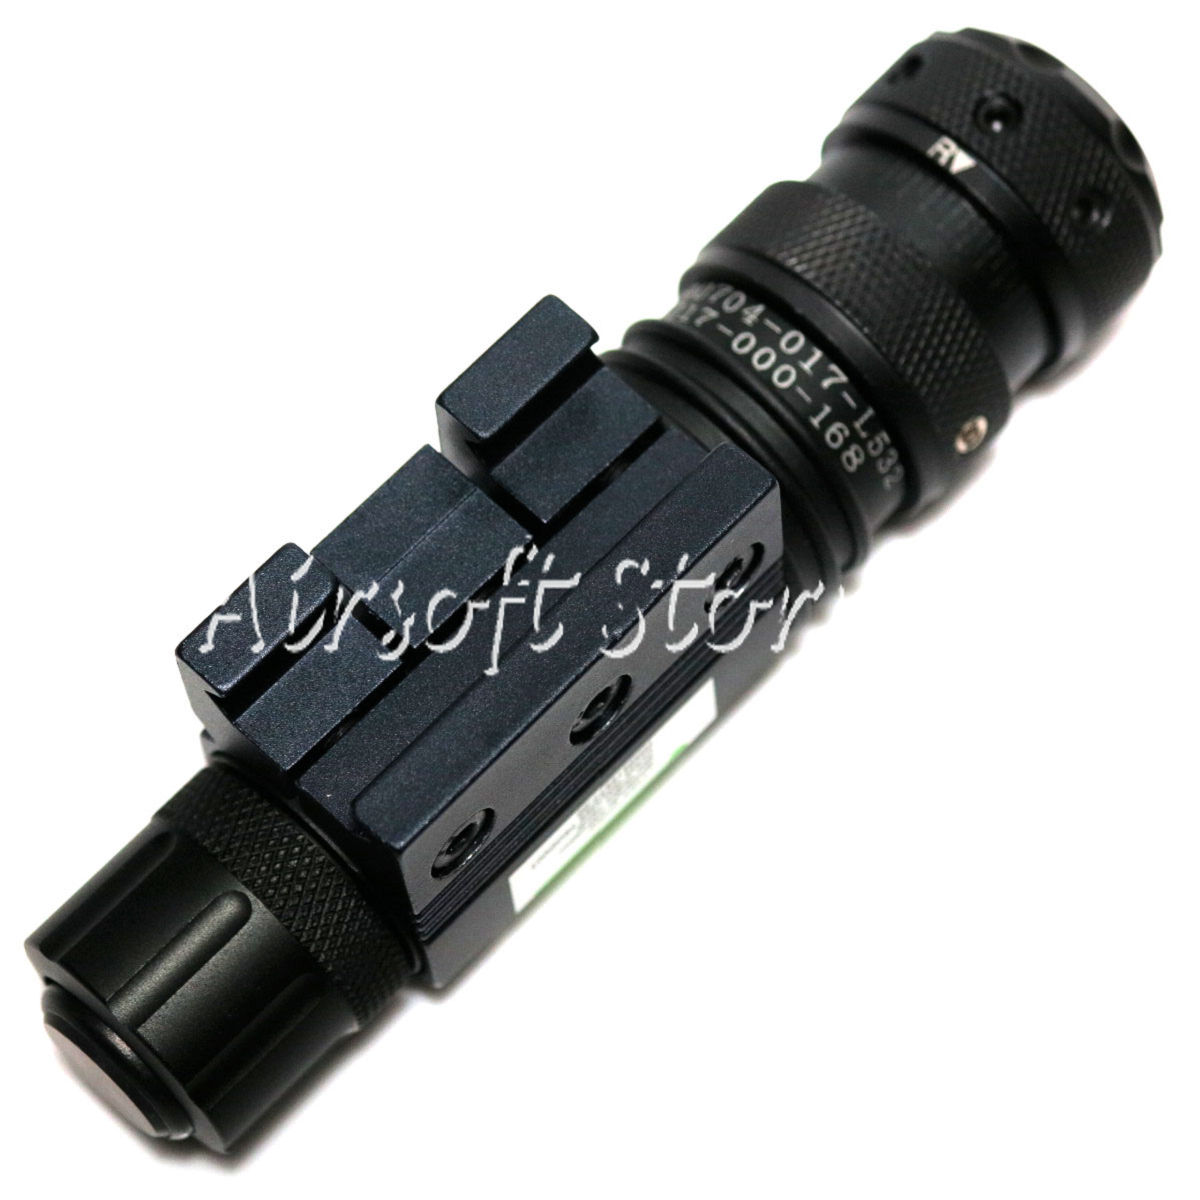 LXGD Tactical Gear High Power Visible Green Laser Sight Pointer JG-017